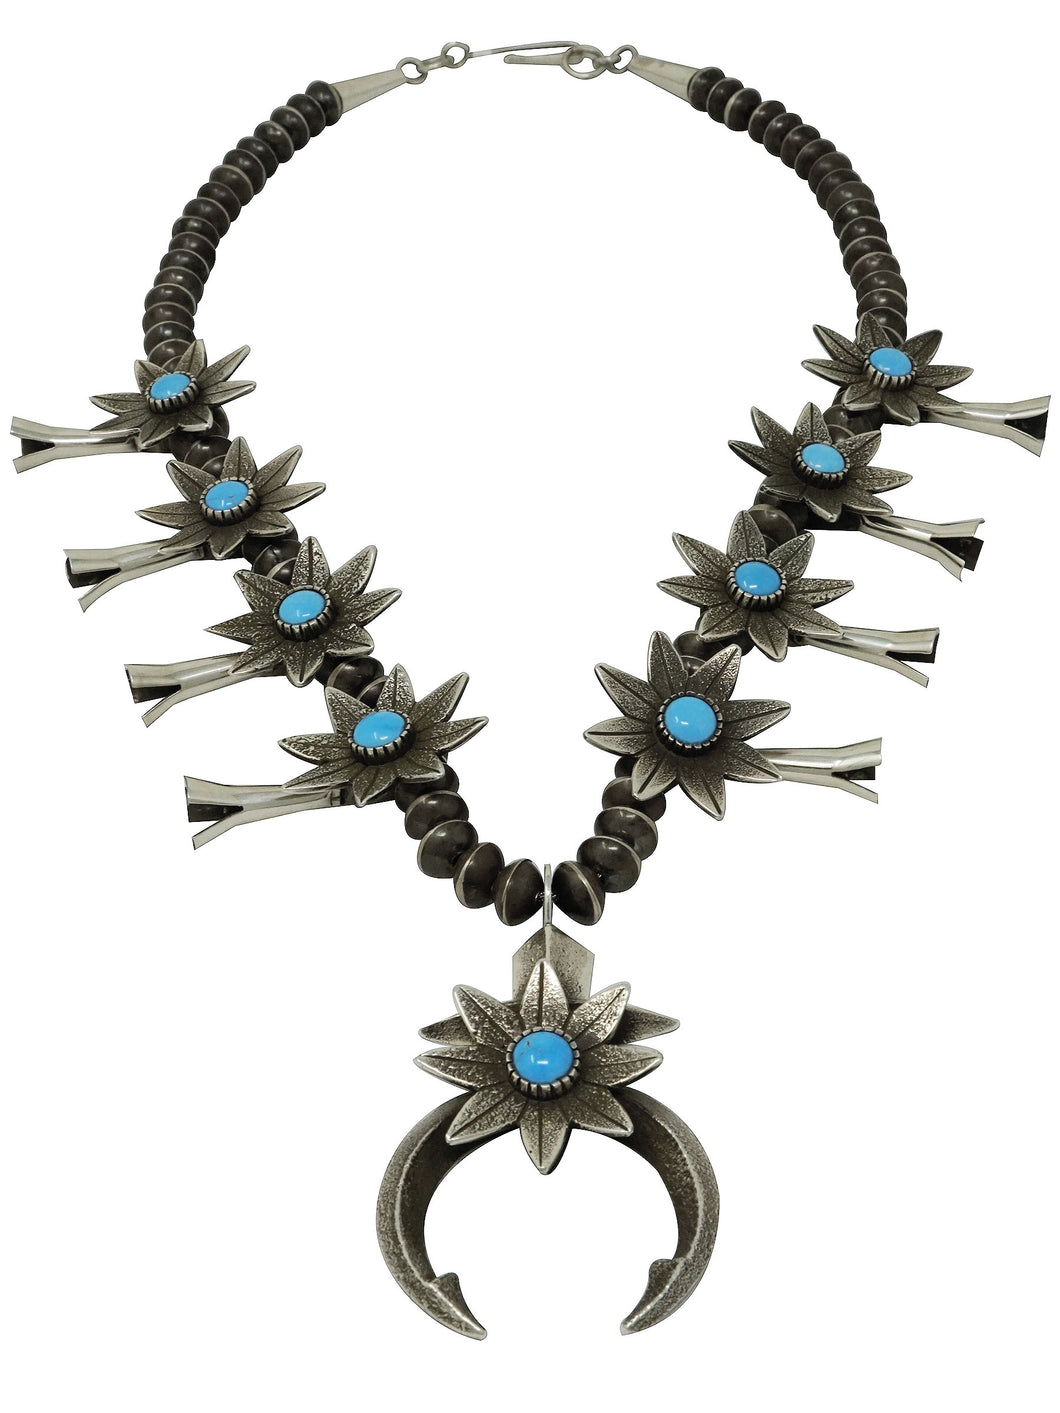 Aaron John, Necklace, Flower Blossom, Kingman Turquoise, Navajo Made, 26